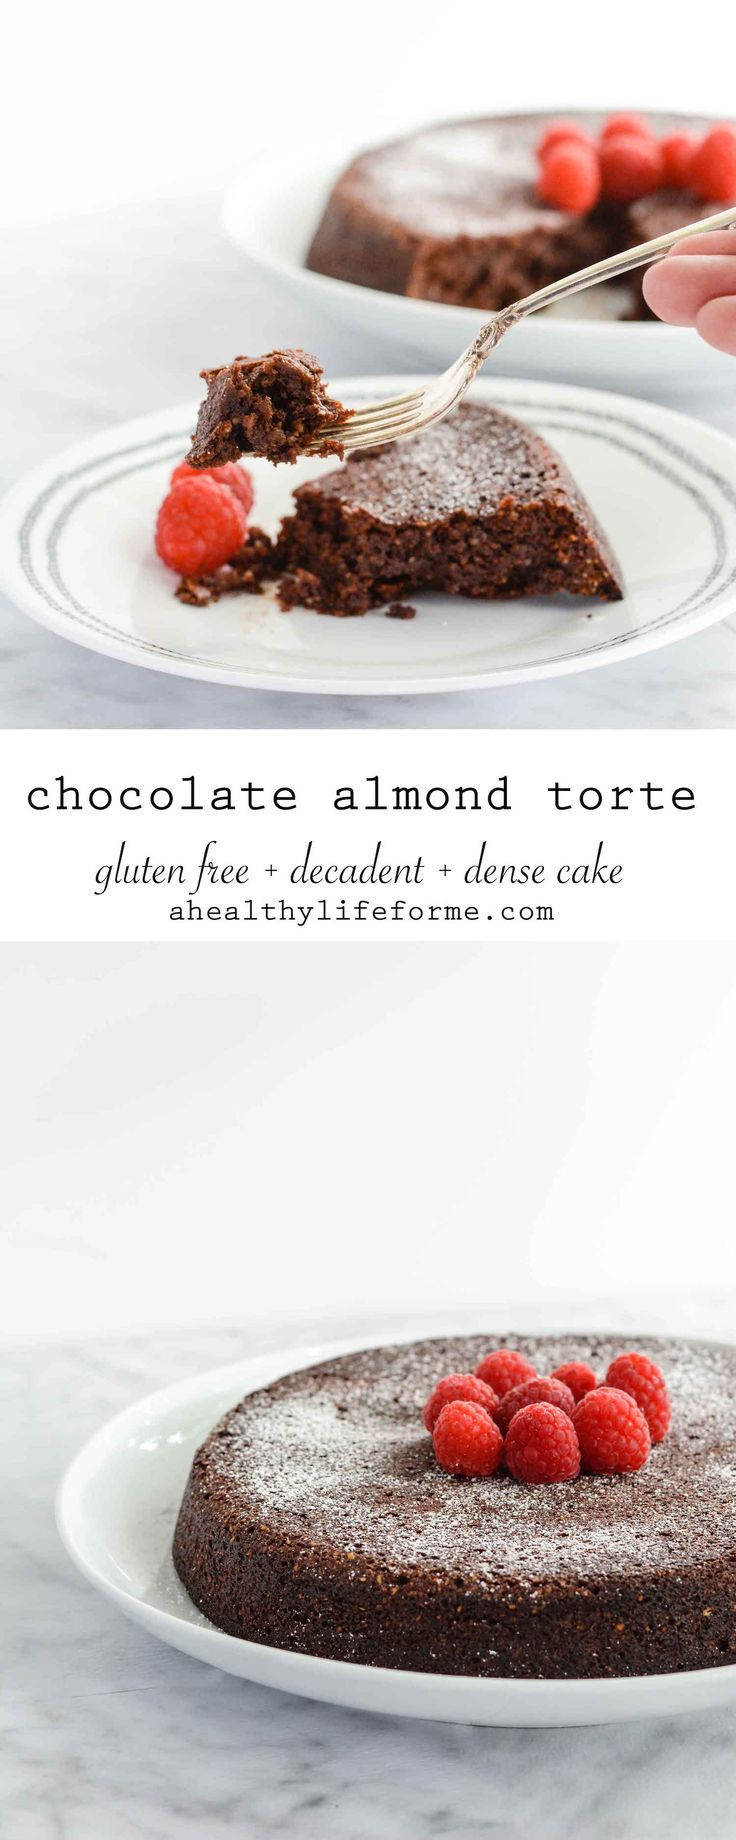 Chocolate Almond Torte {gluten free} a dense, decadent chocolate cake recipe that is also gluten free.- A Healthy Life For Me